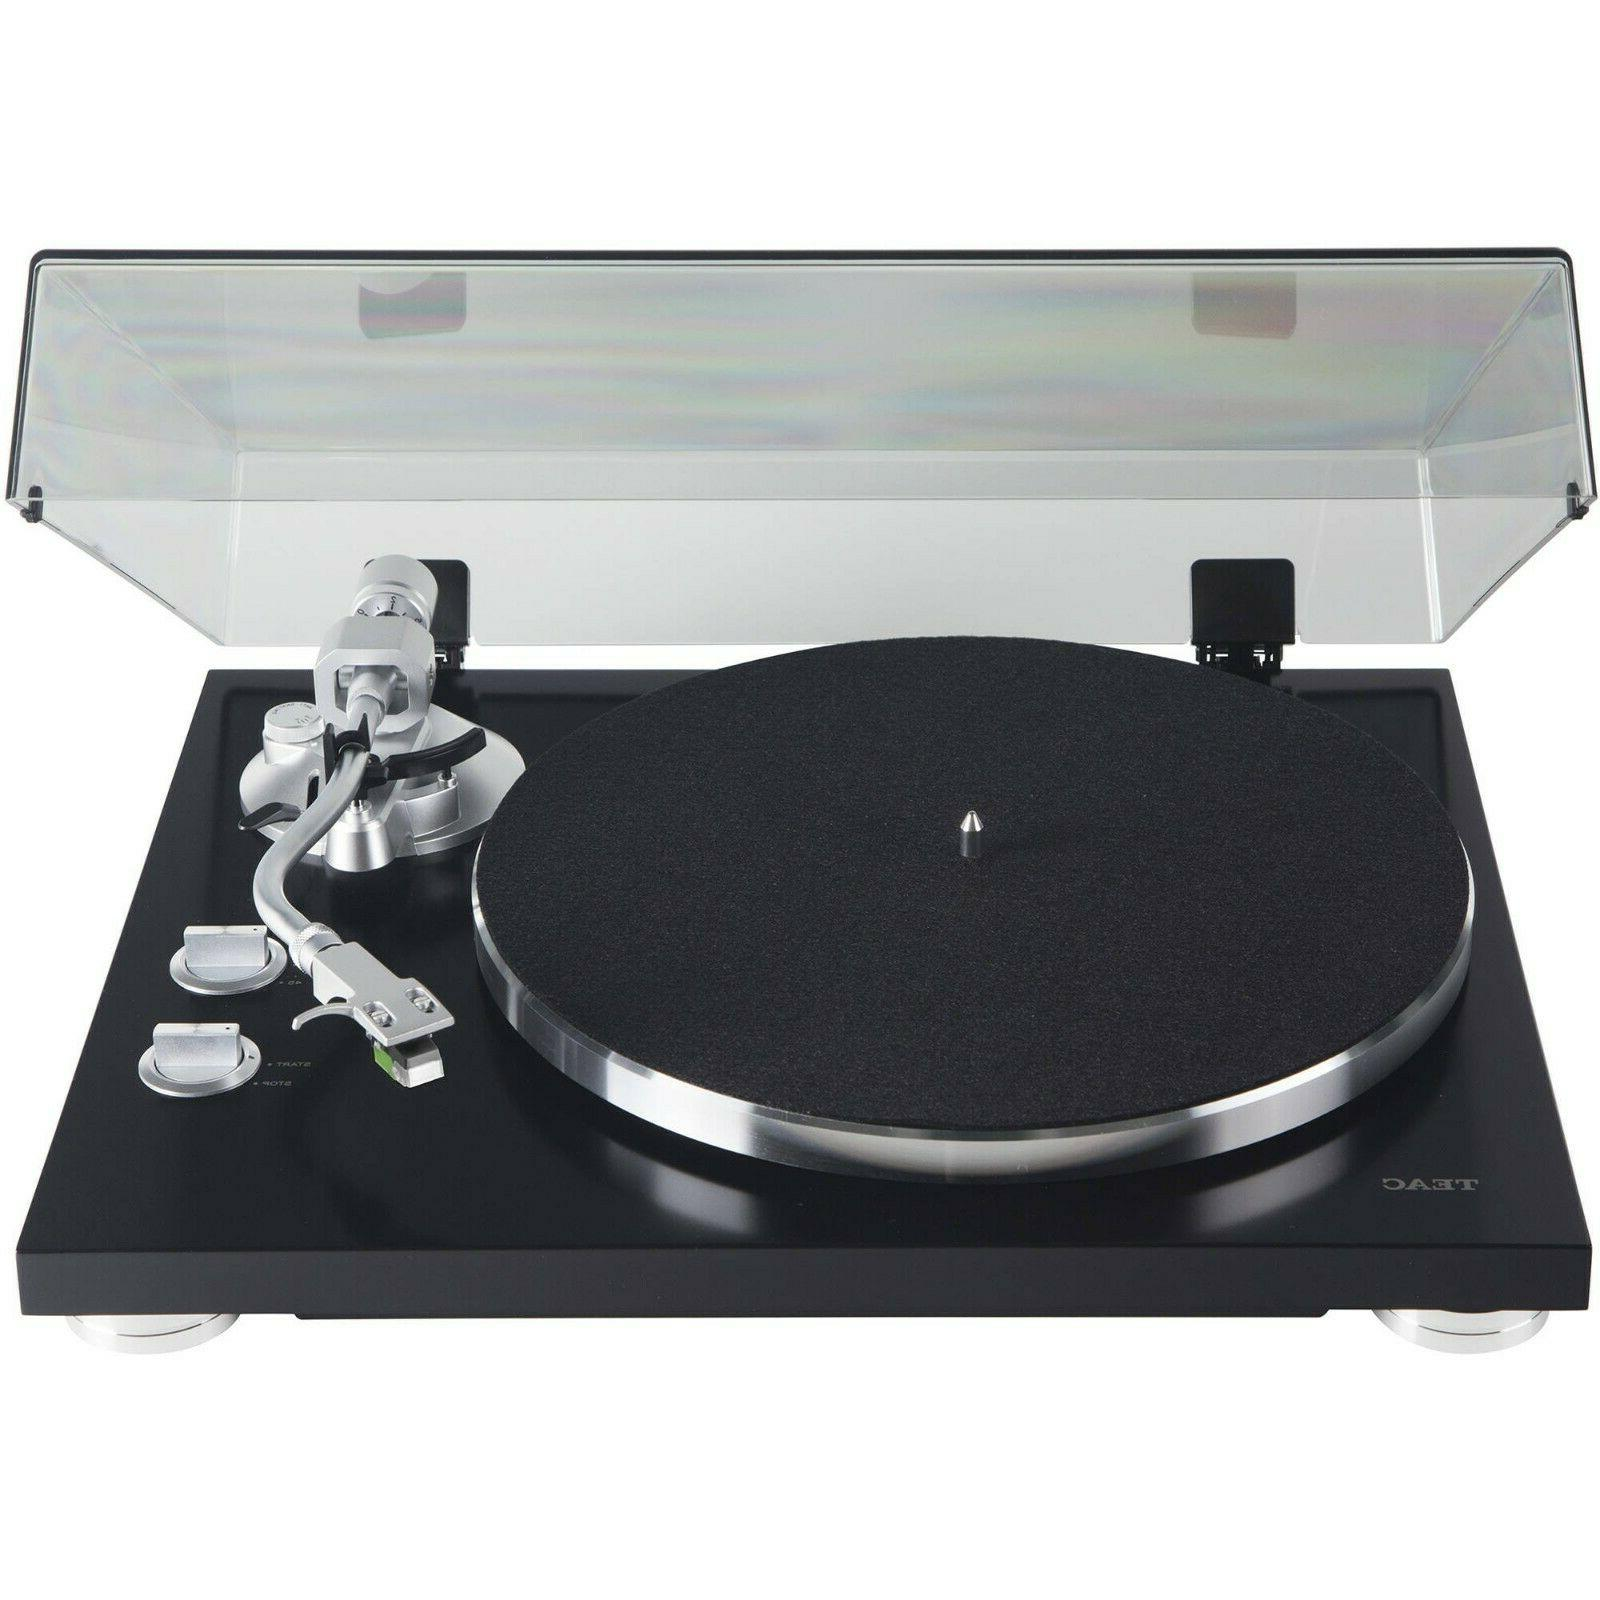 TEAC - Belt-Driven Turntable with S-Shaped Tonearm Black